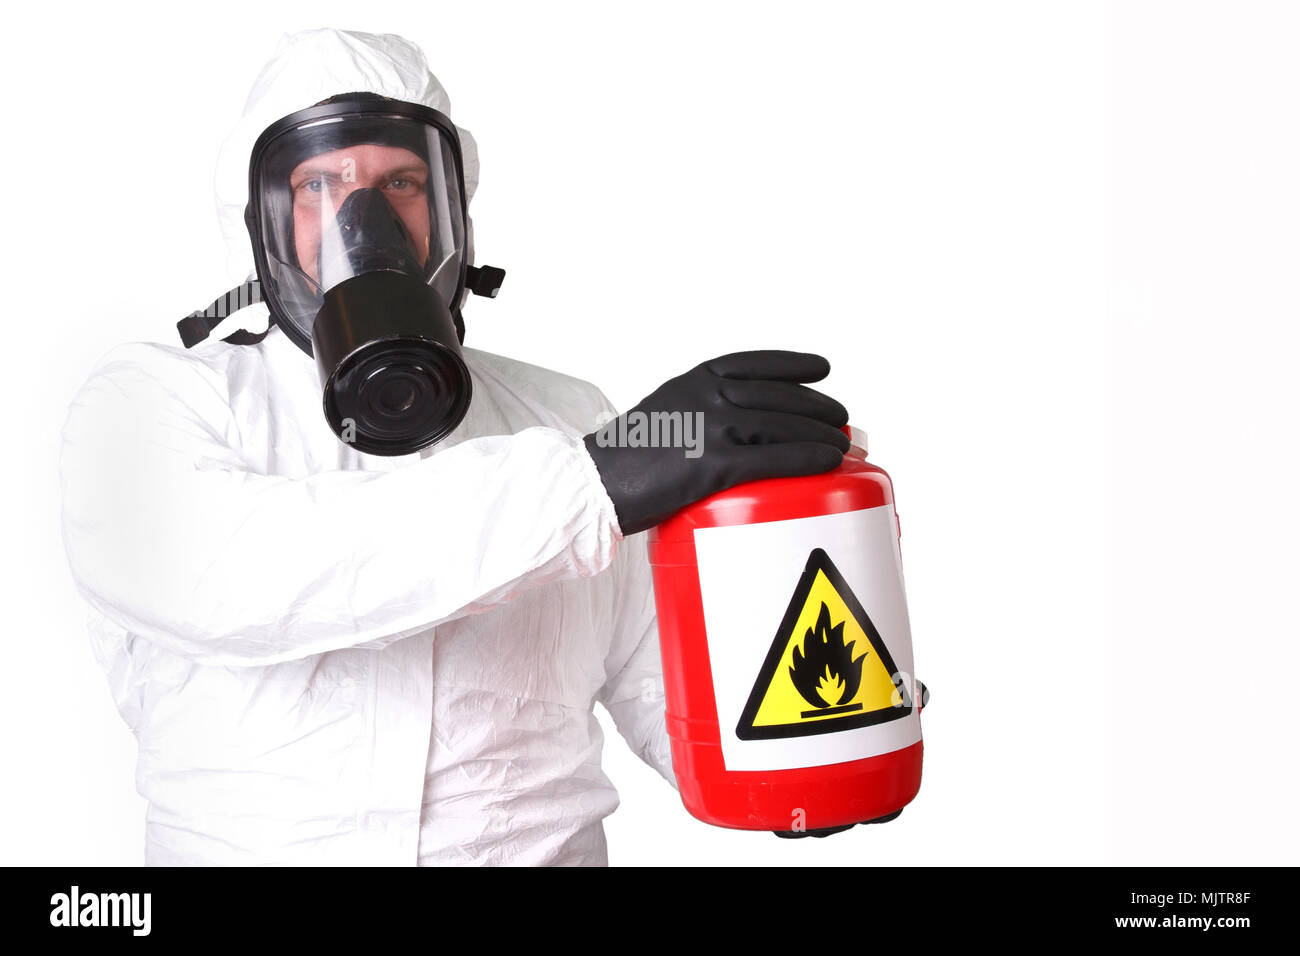 Man in a hazmat suit with red container dangerous material isolated on white - Stock Image